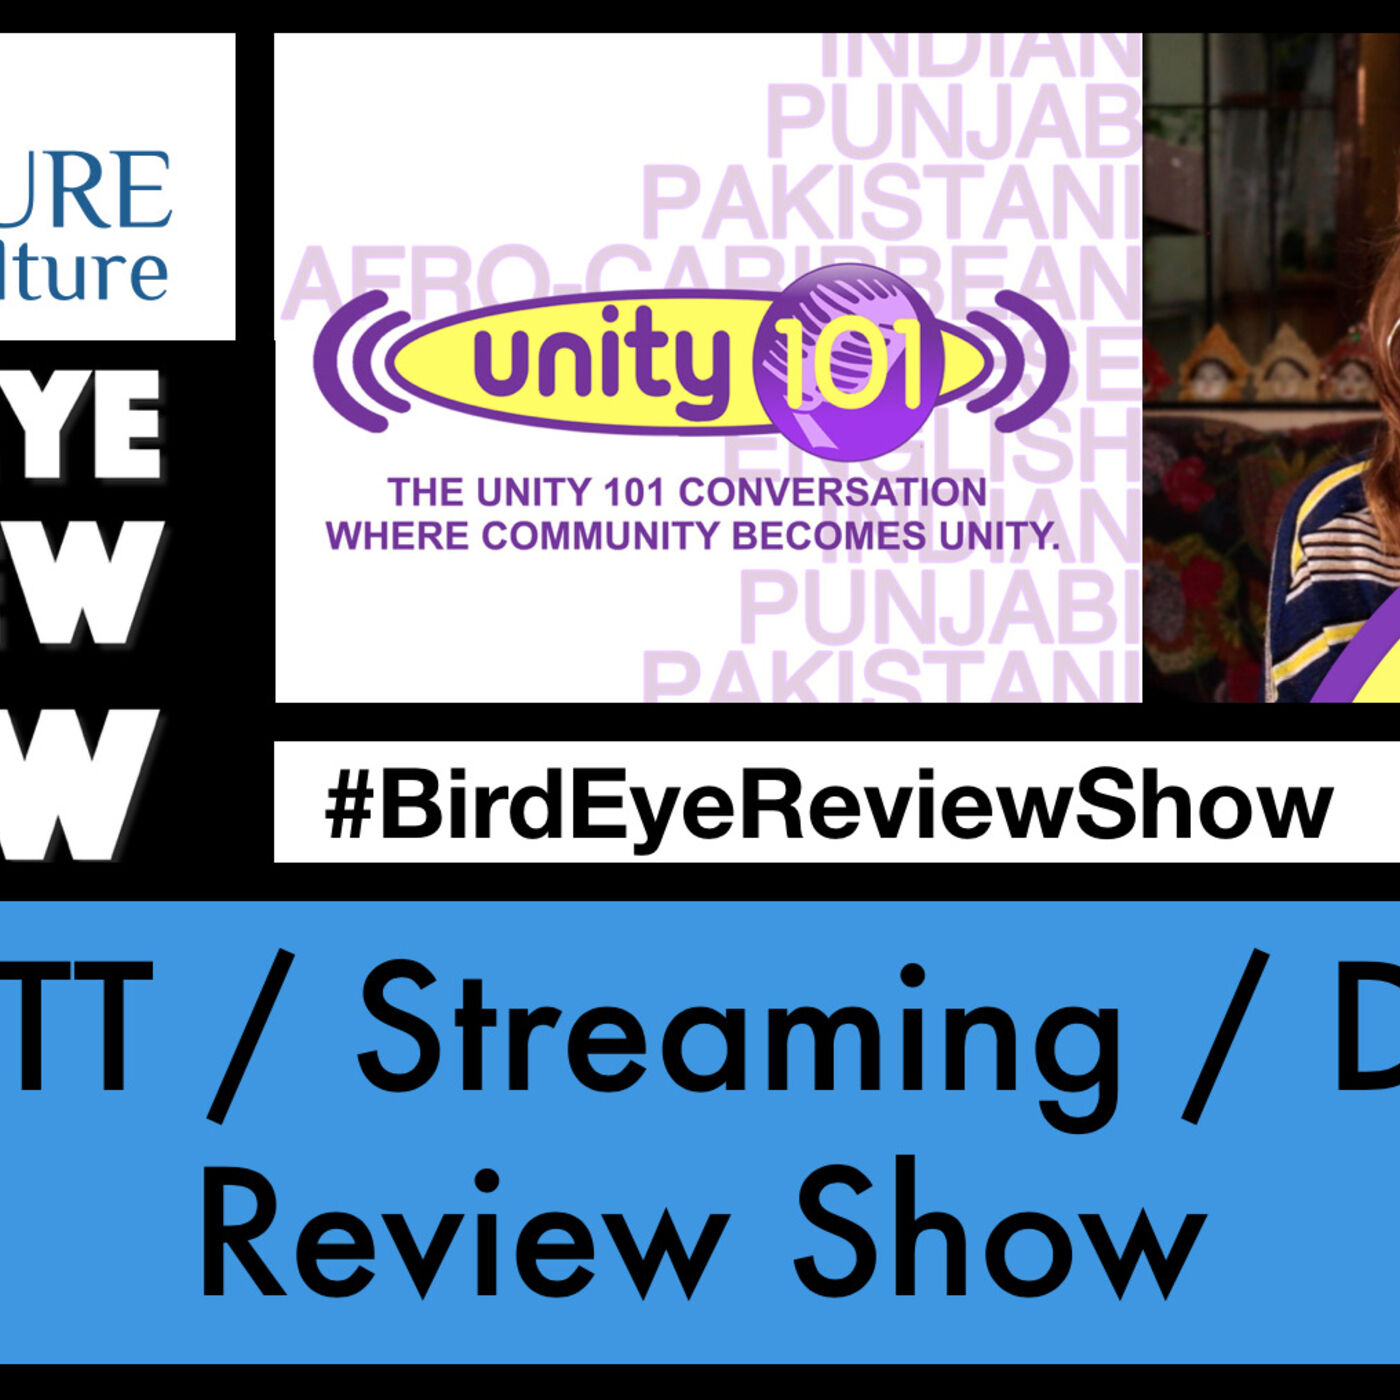 The Birds Eye Review Show with Natalie